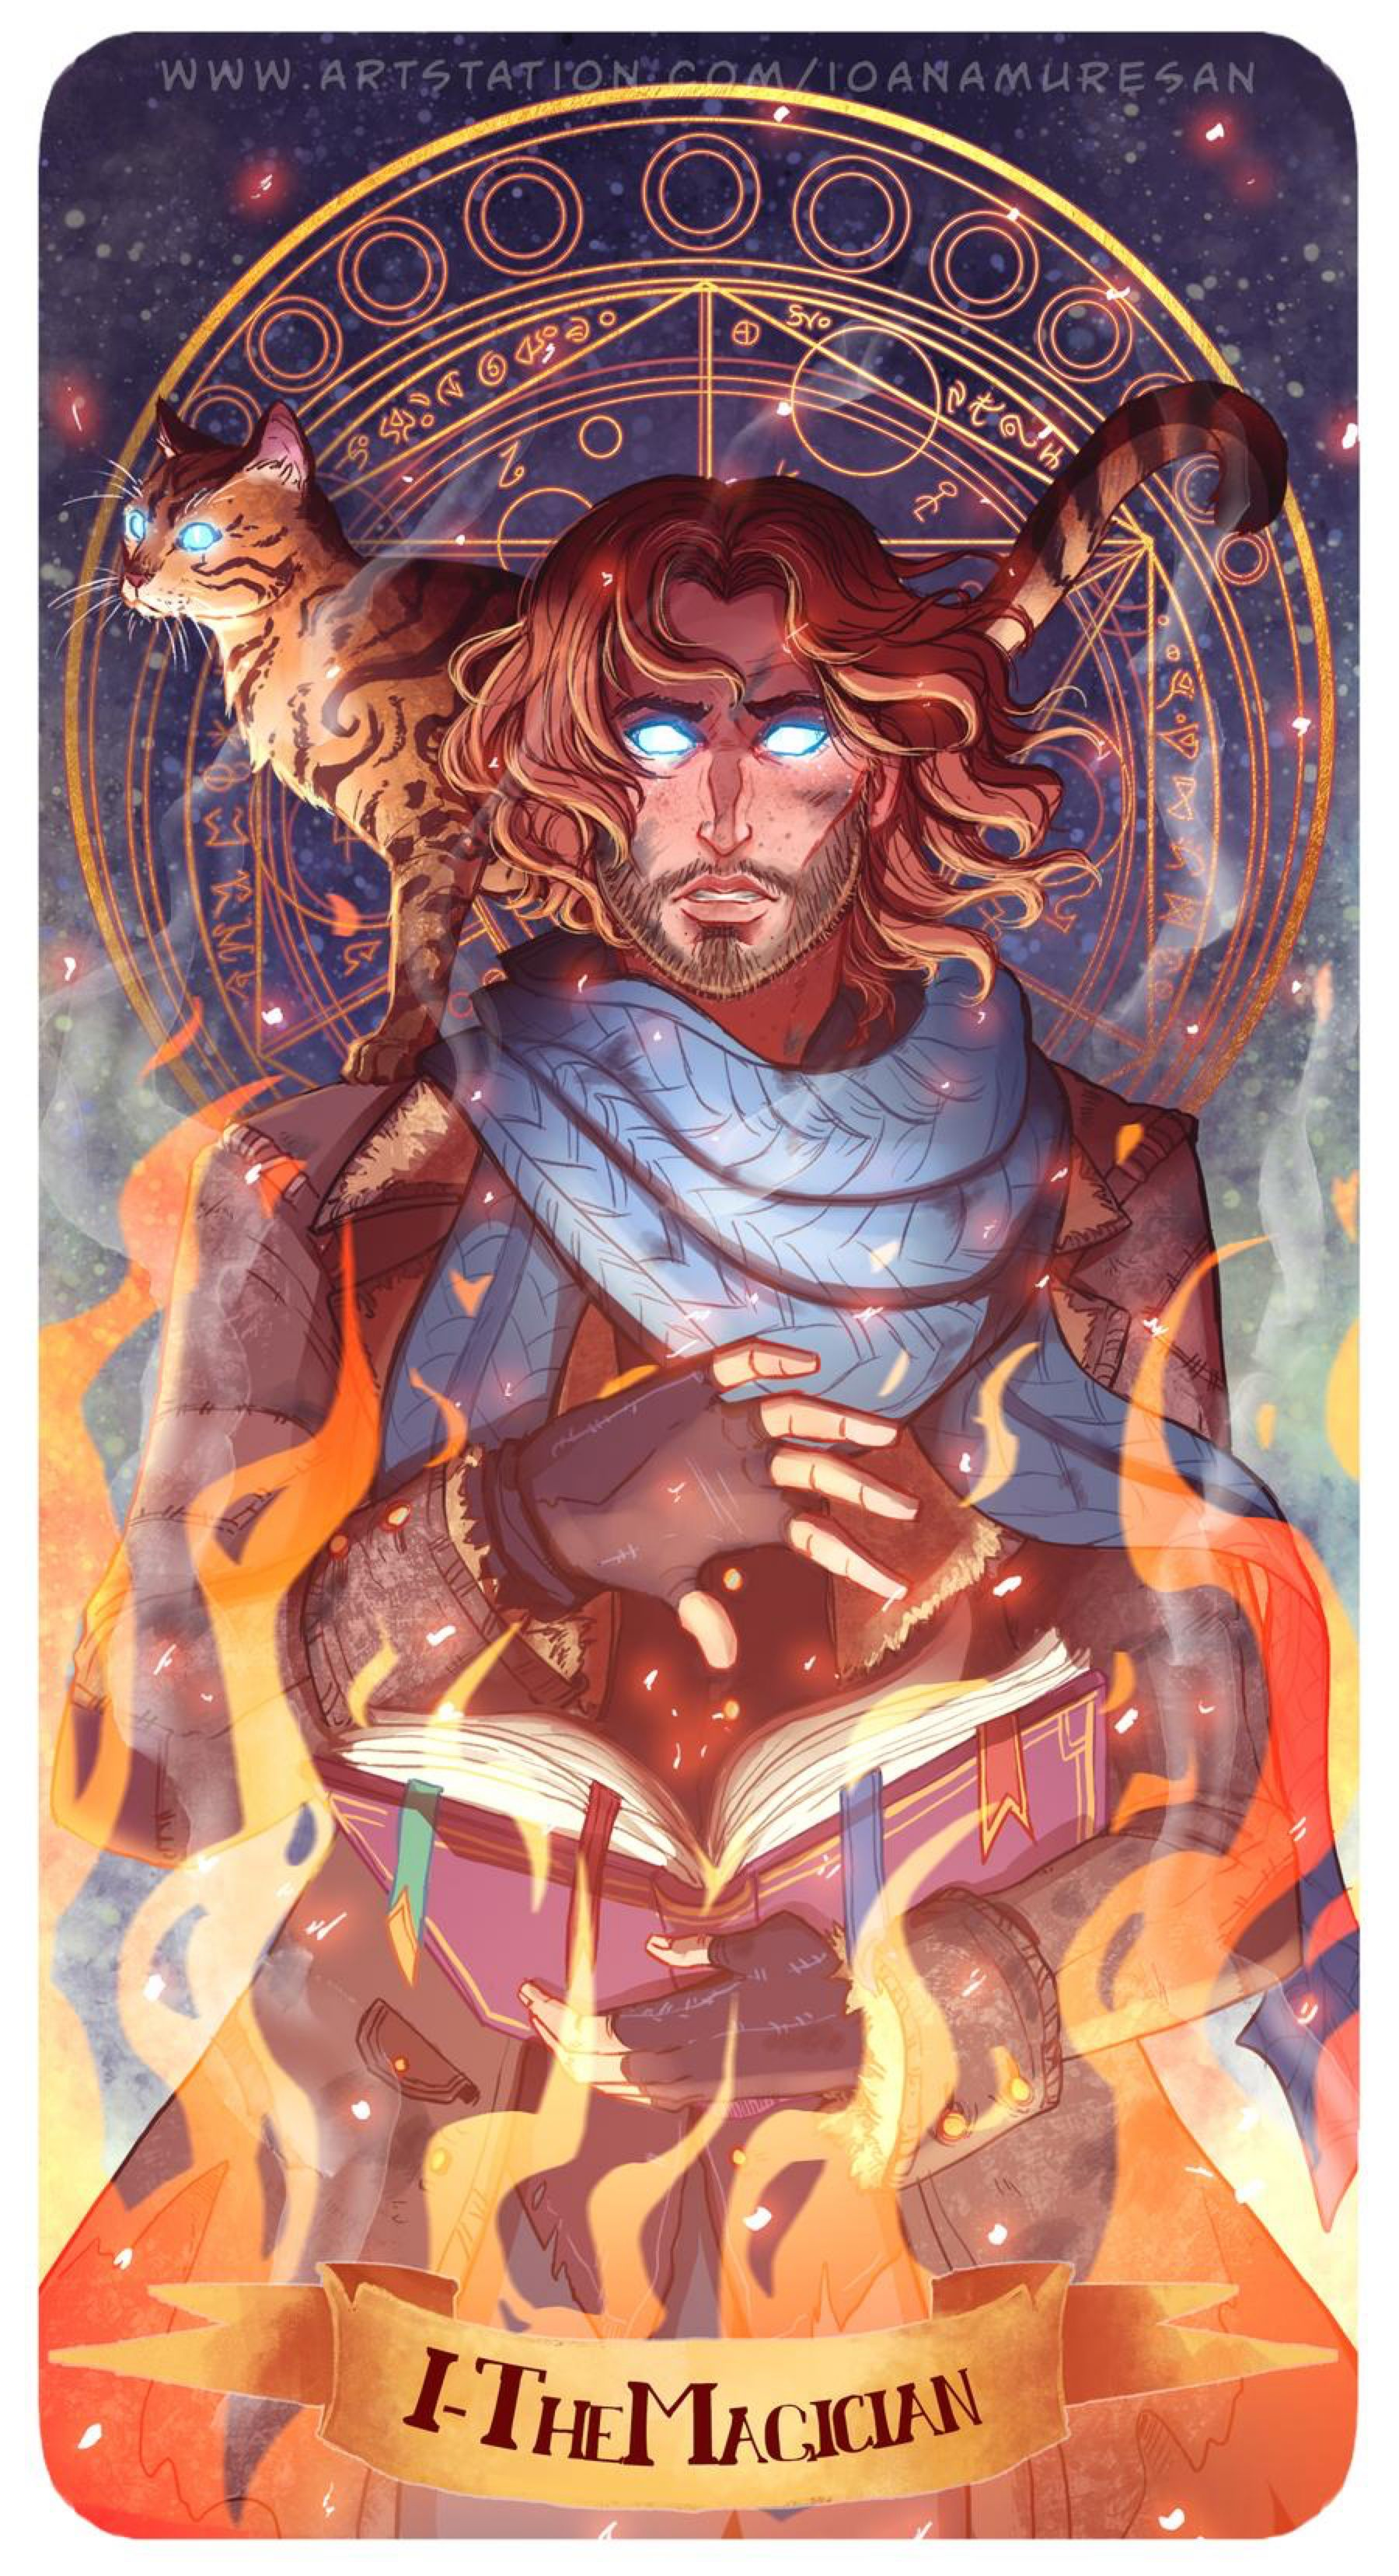 Caleb the magician by ioanamuresan on deviantart in